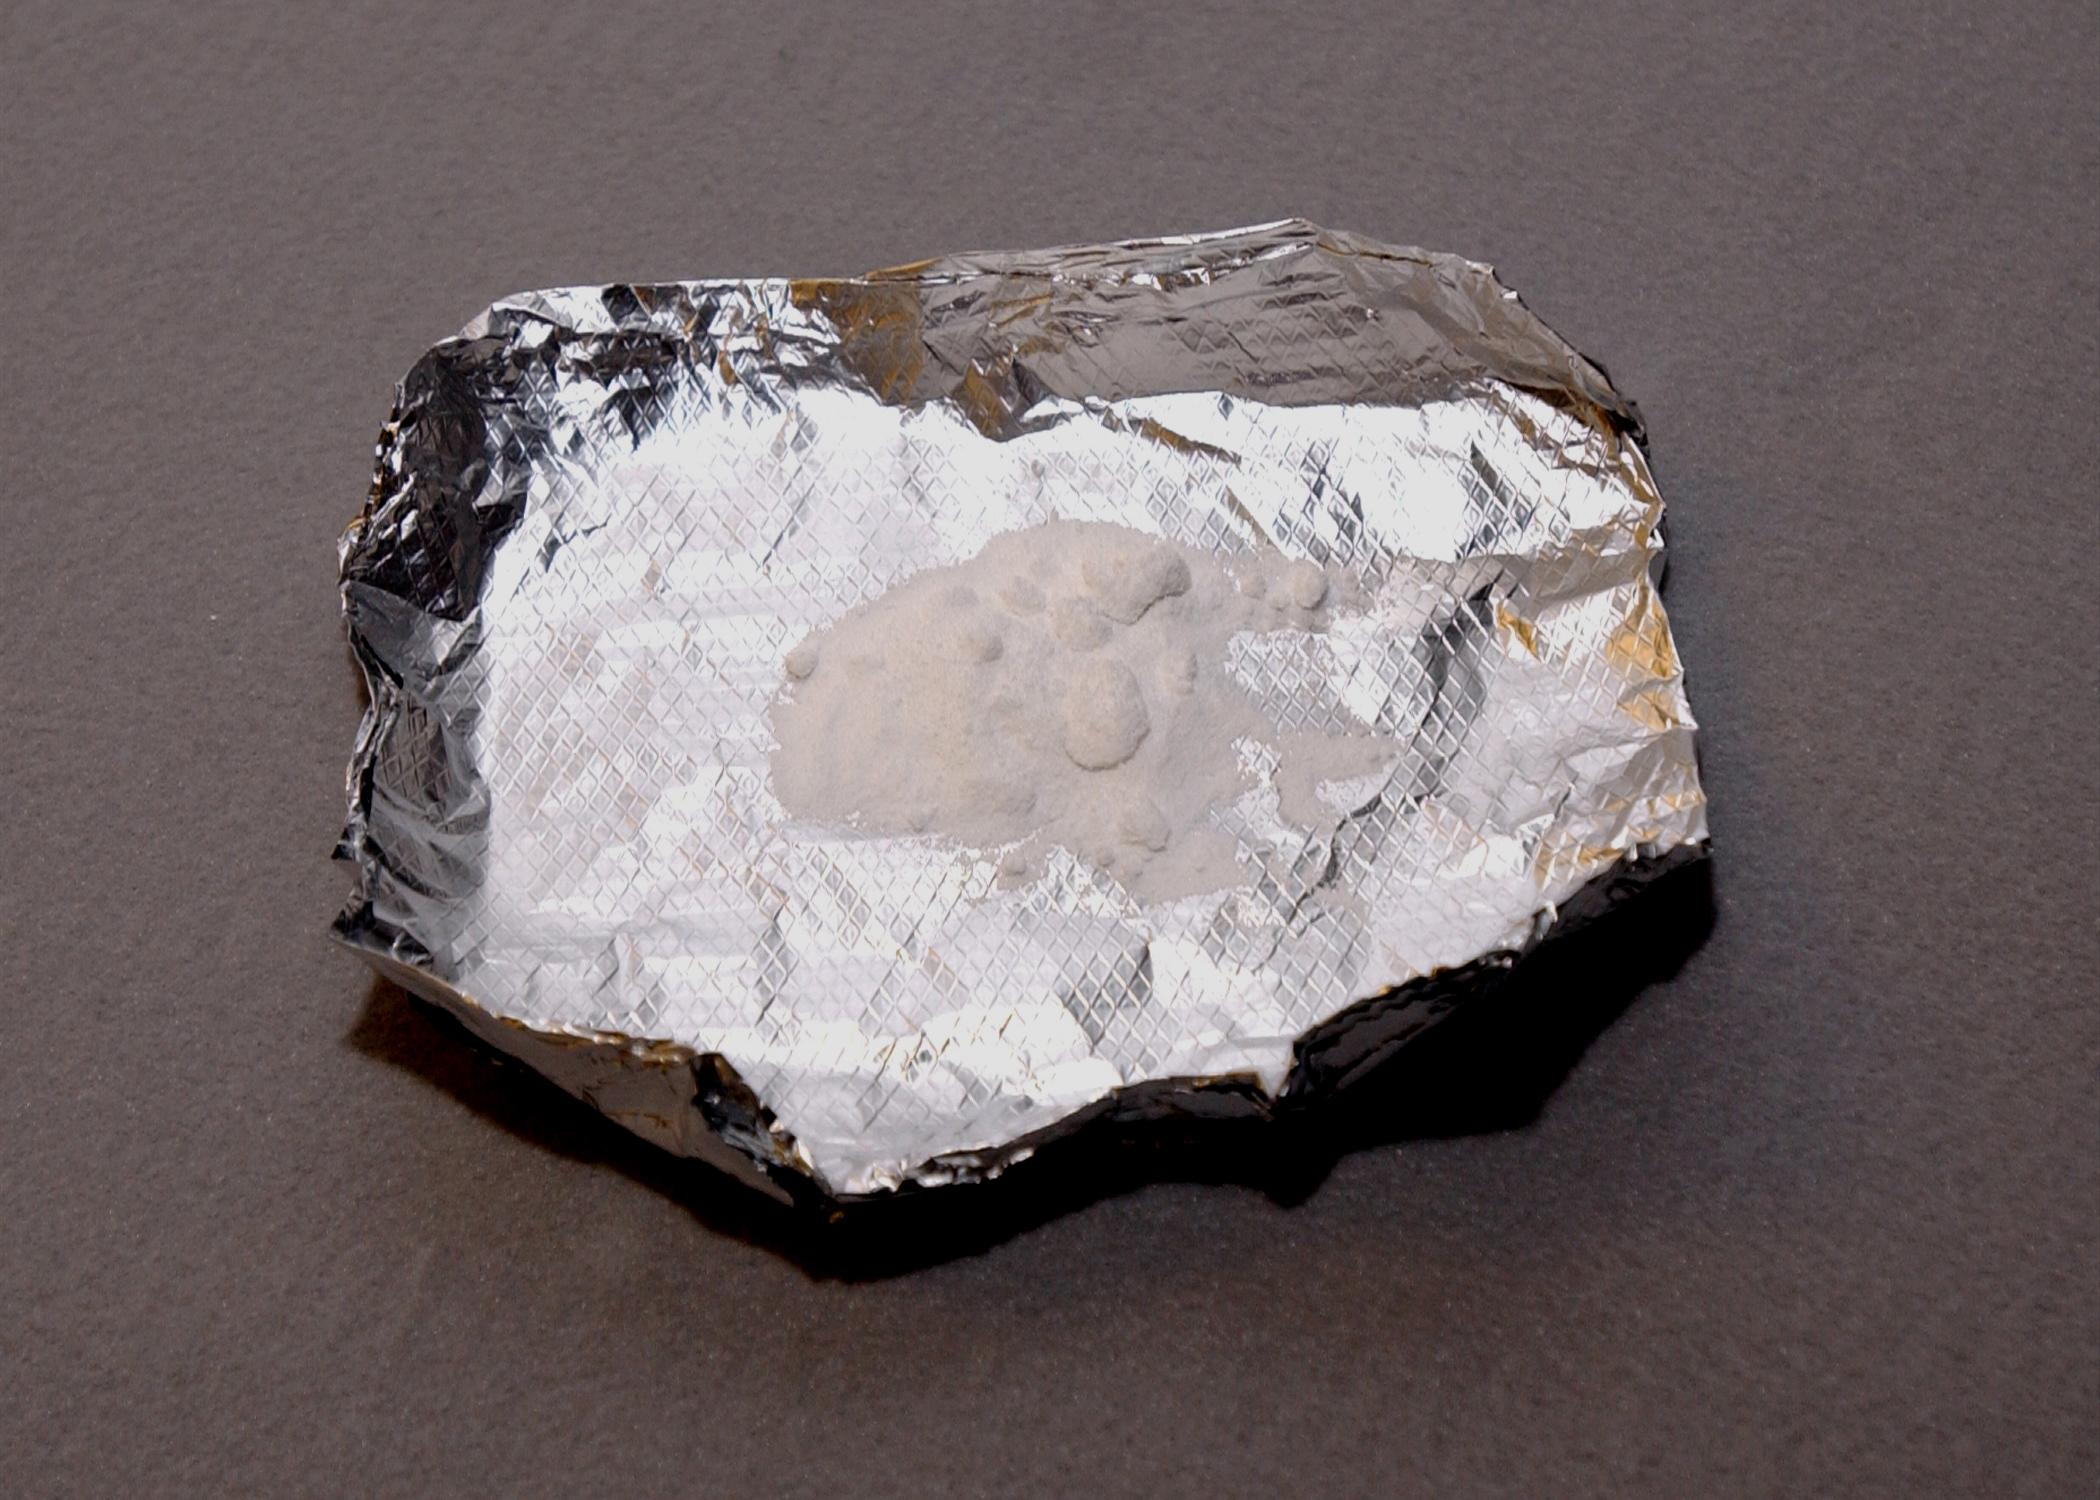 Powder Methamphetamine in Foil